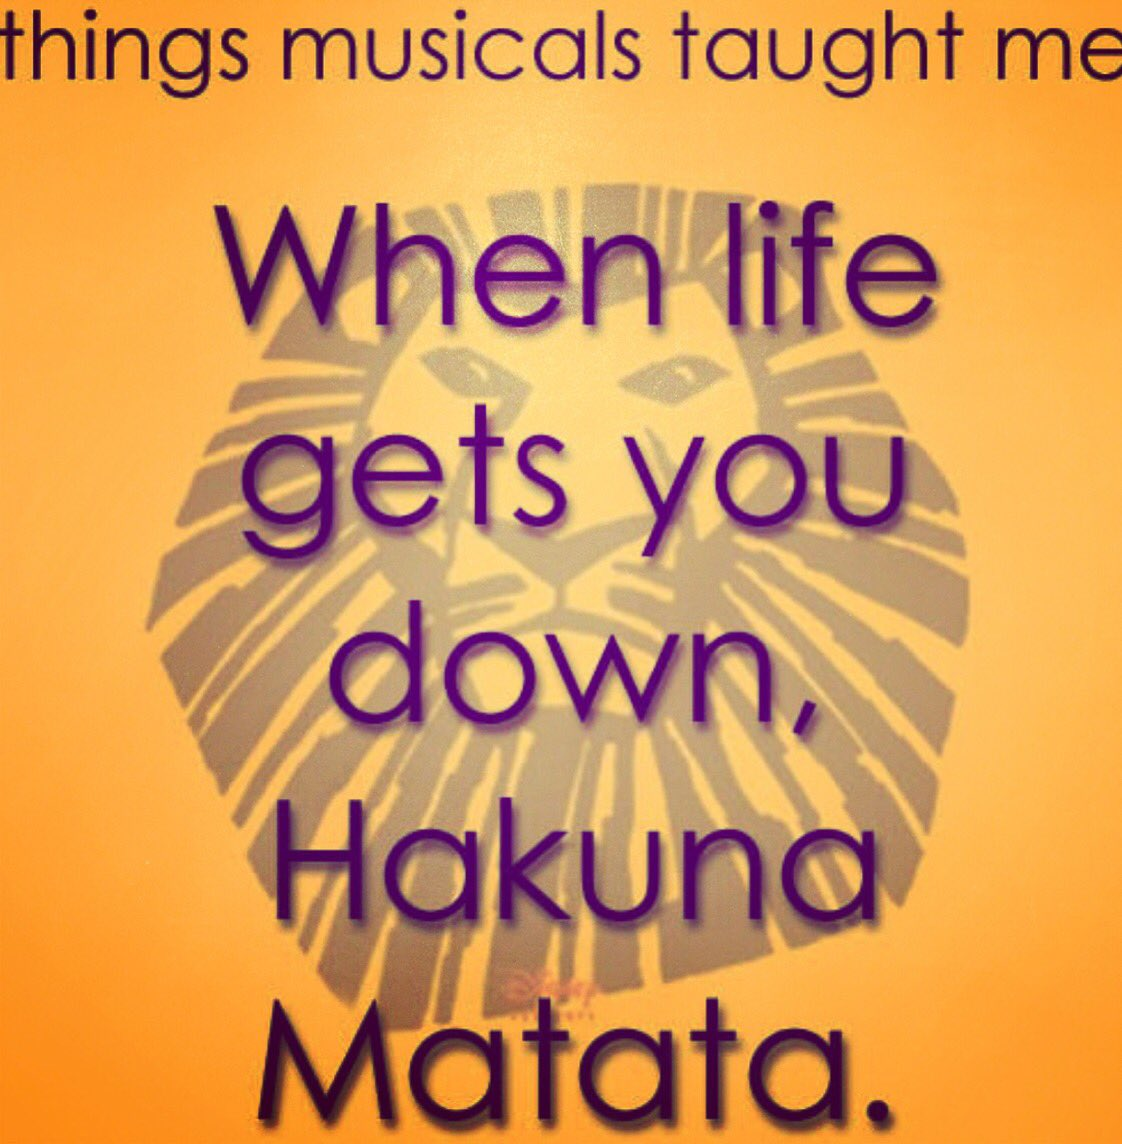 Inspirational Quotes From Musicals